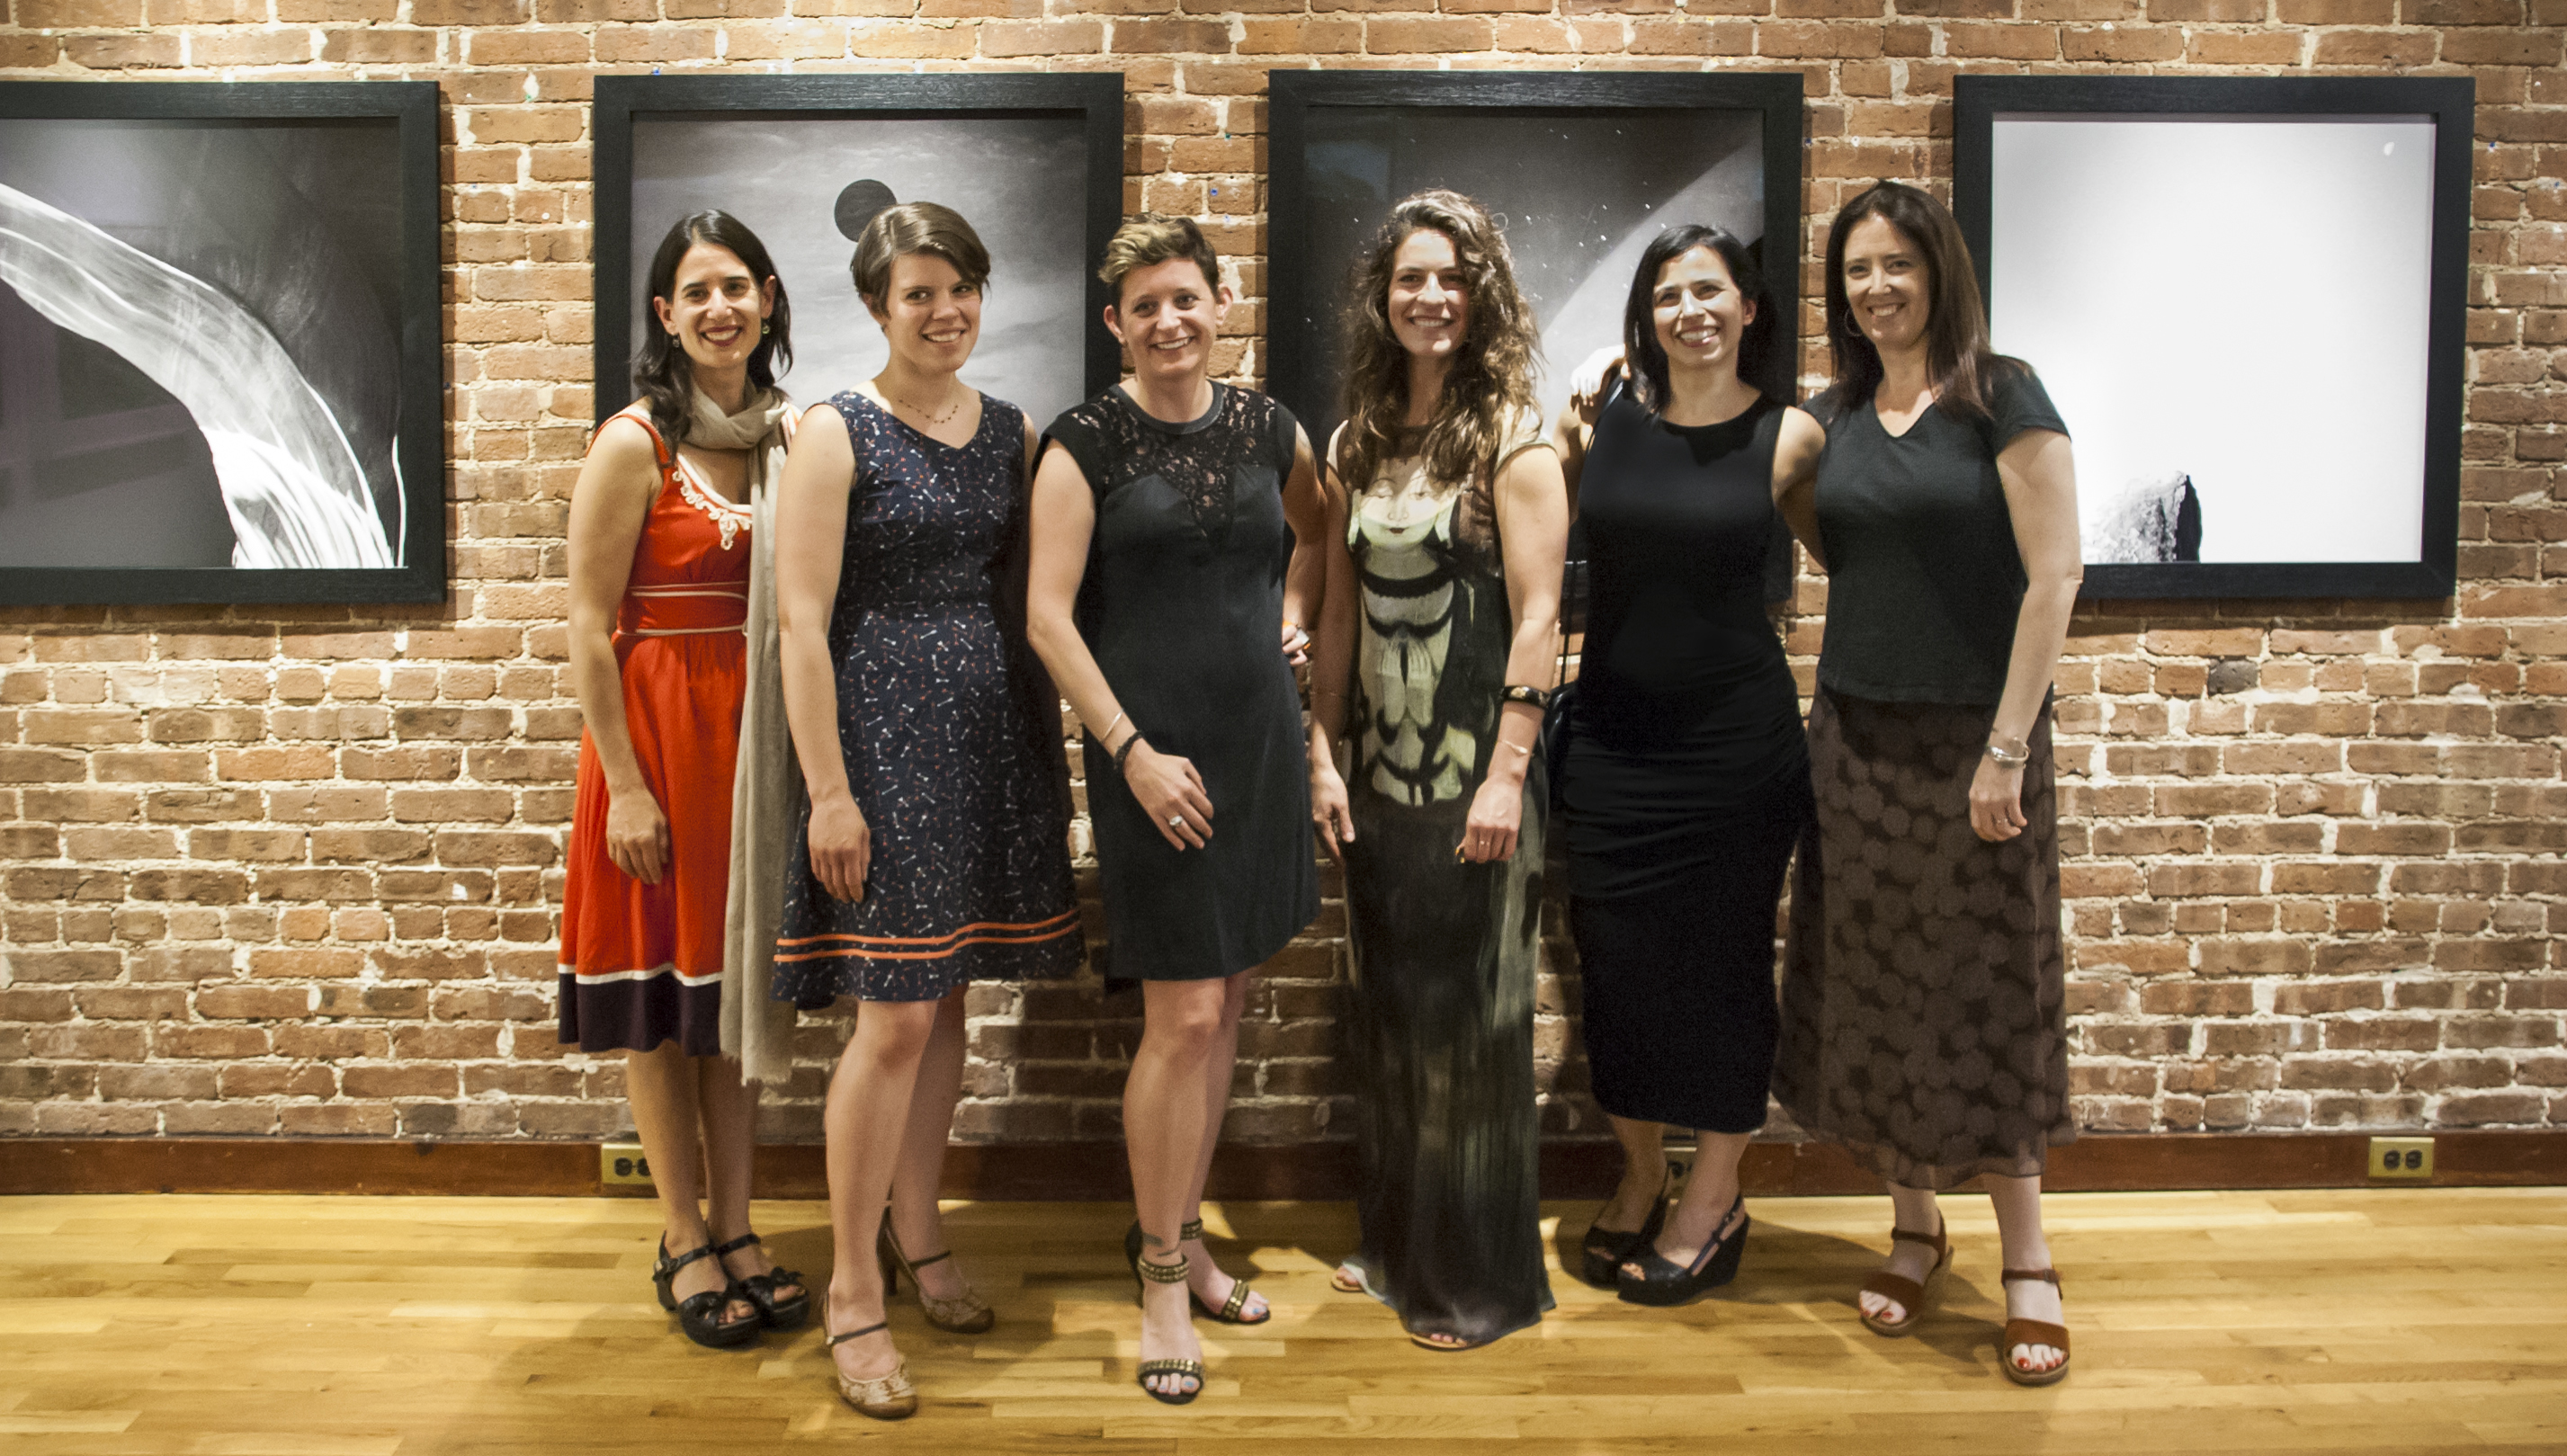 From left: Carolyn Monastra, Maria Passarotti, Danelle Manthey, Heather Boose Weiss, Jessica M Kaufman, Leah Oates